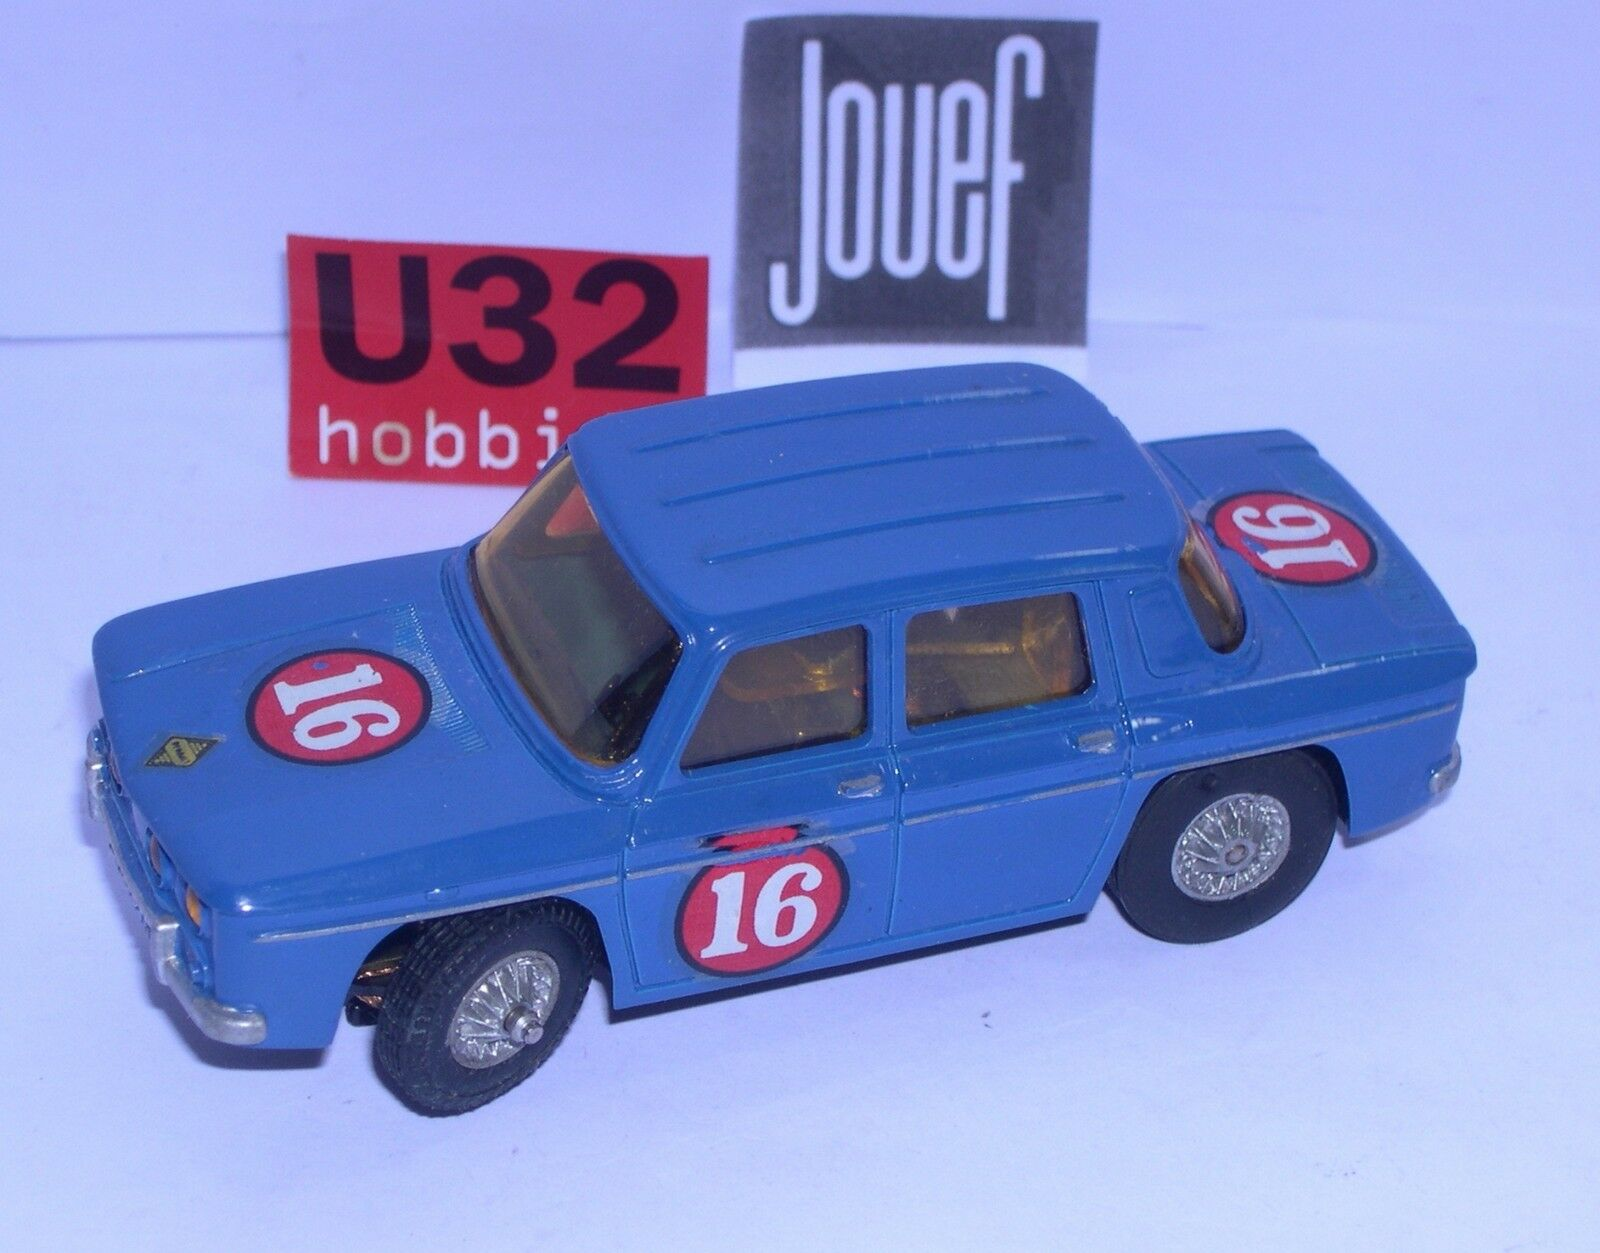 FN JOUEF 3540 SLOT CARRENAULT 8 GORDINI blueE VERY GOOD CONDITION UNBOXED